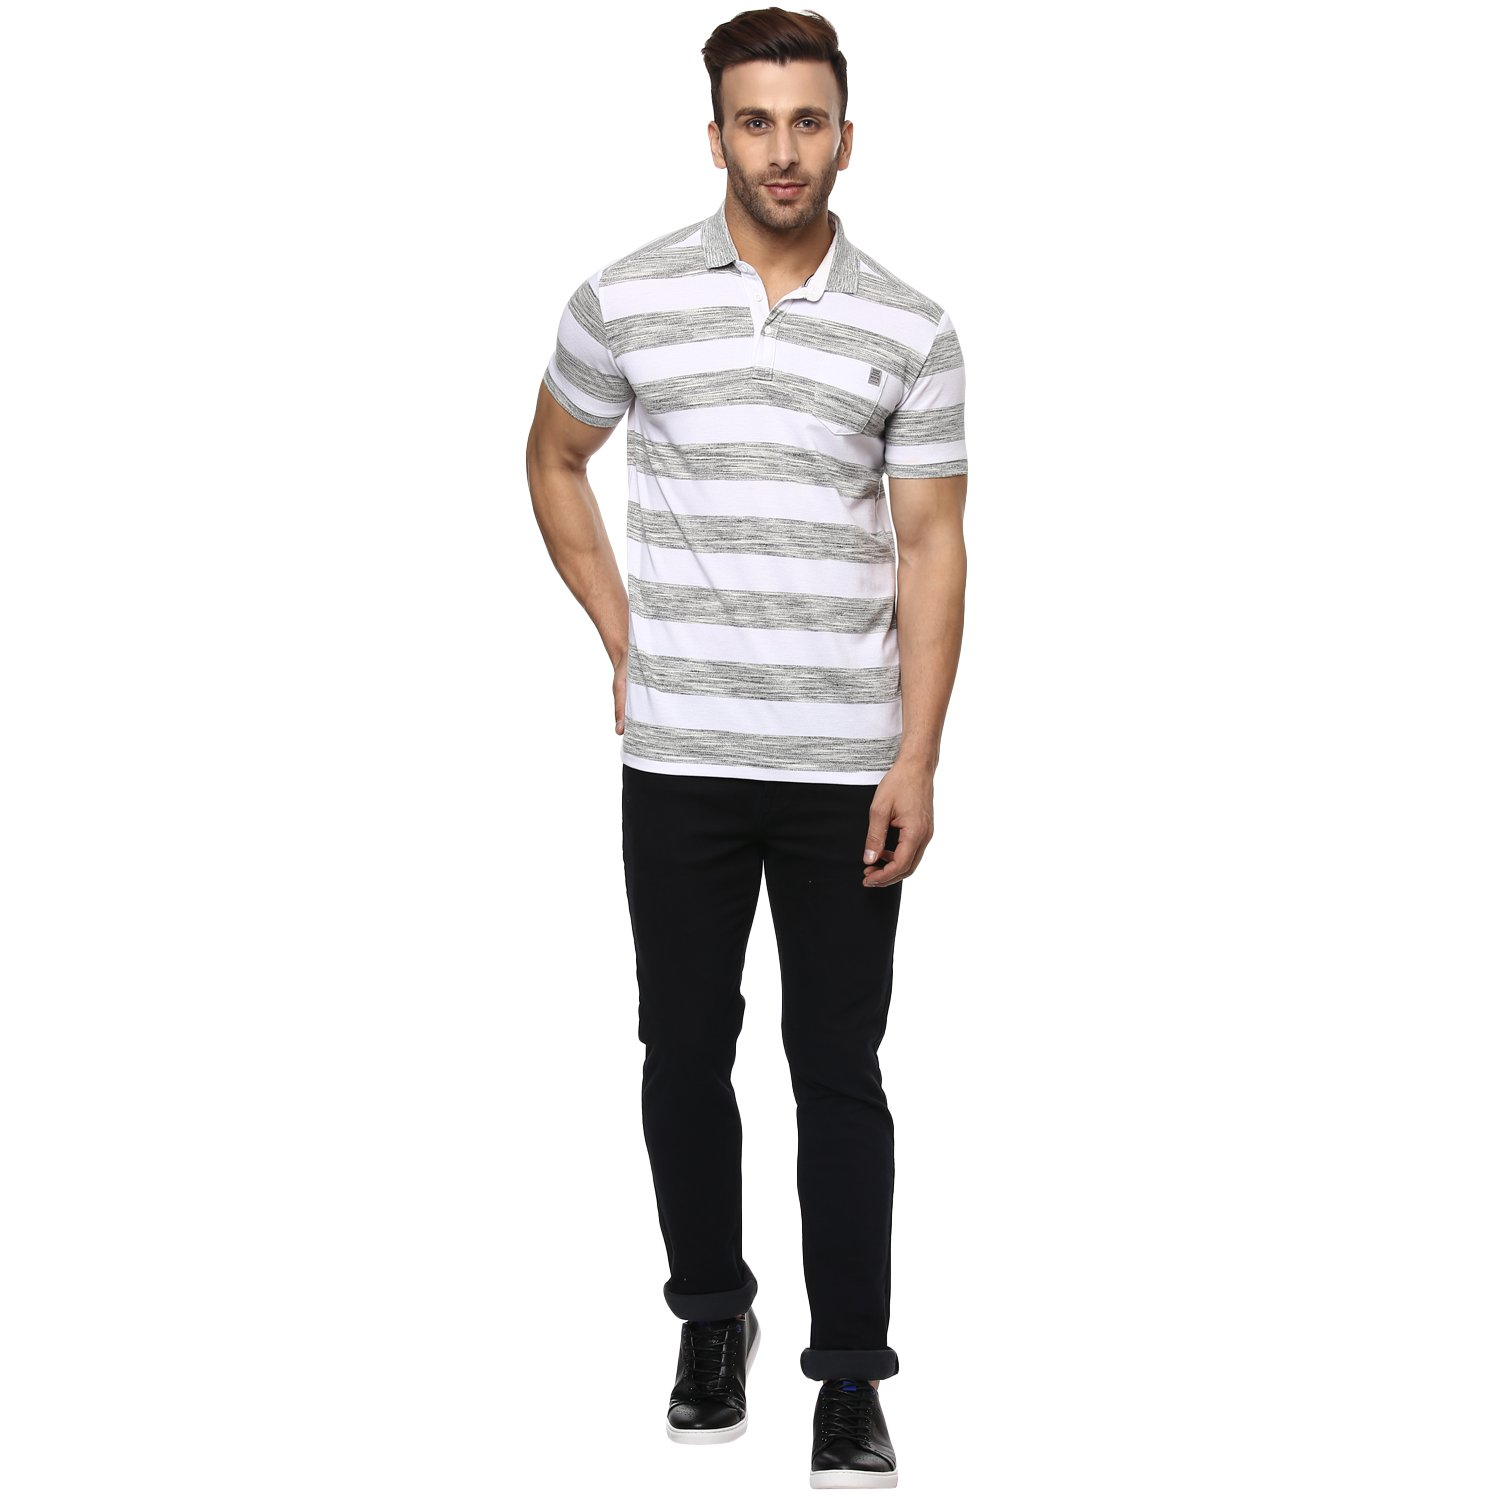 b045978c Mufti Polo Stripes Half Sleeves T-Shirt: Amazon.in: Clothing & Accessories